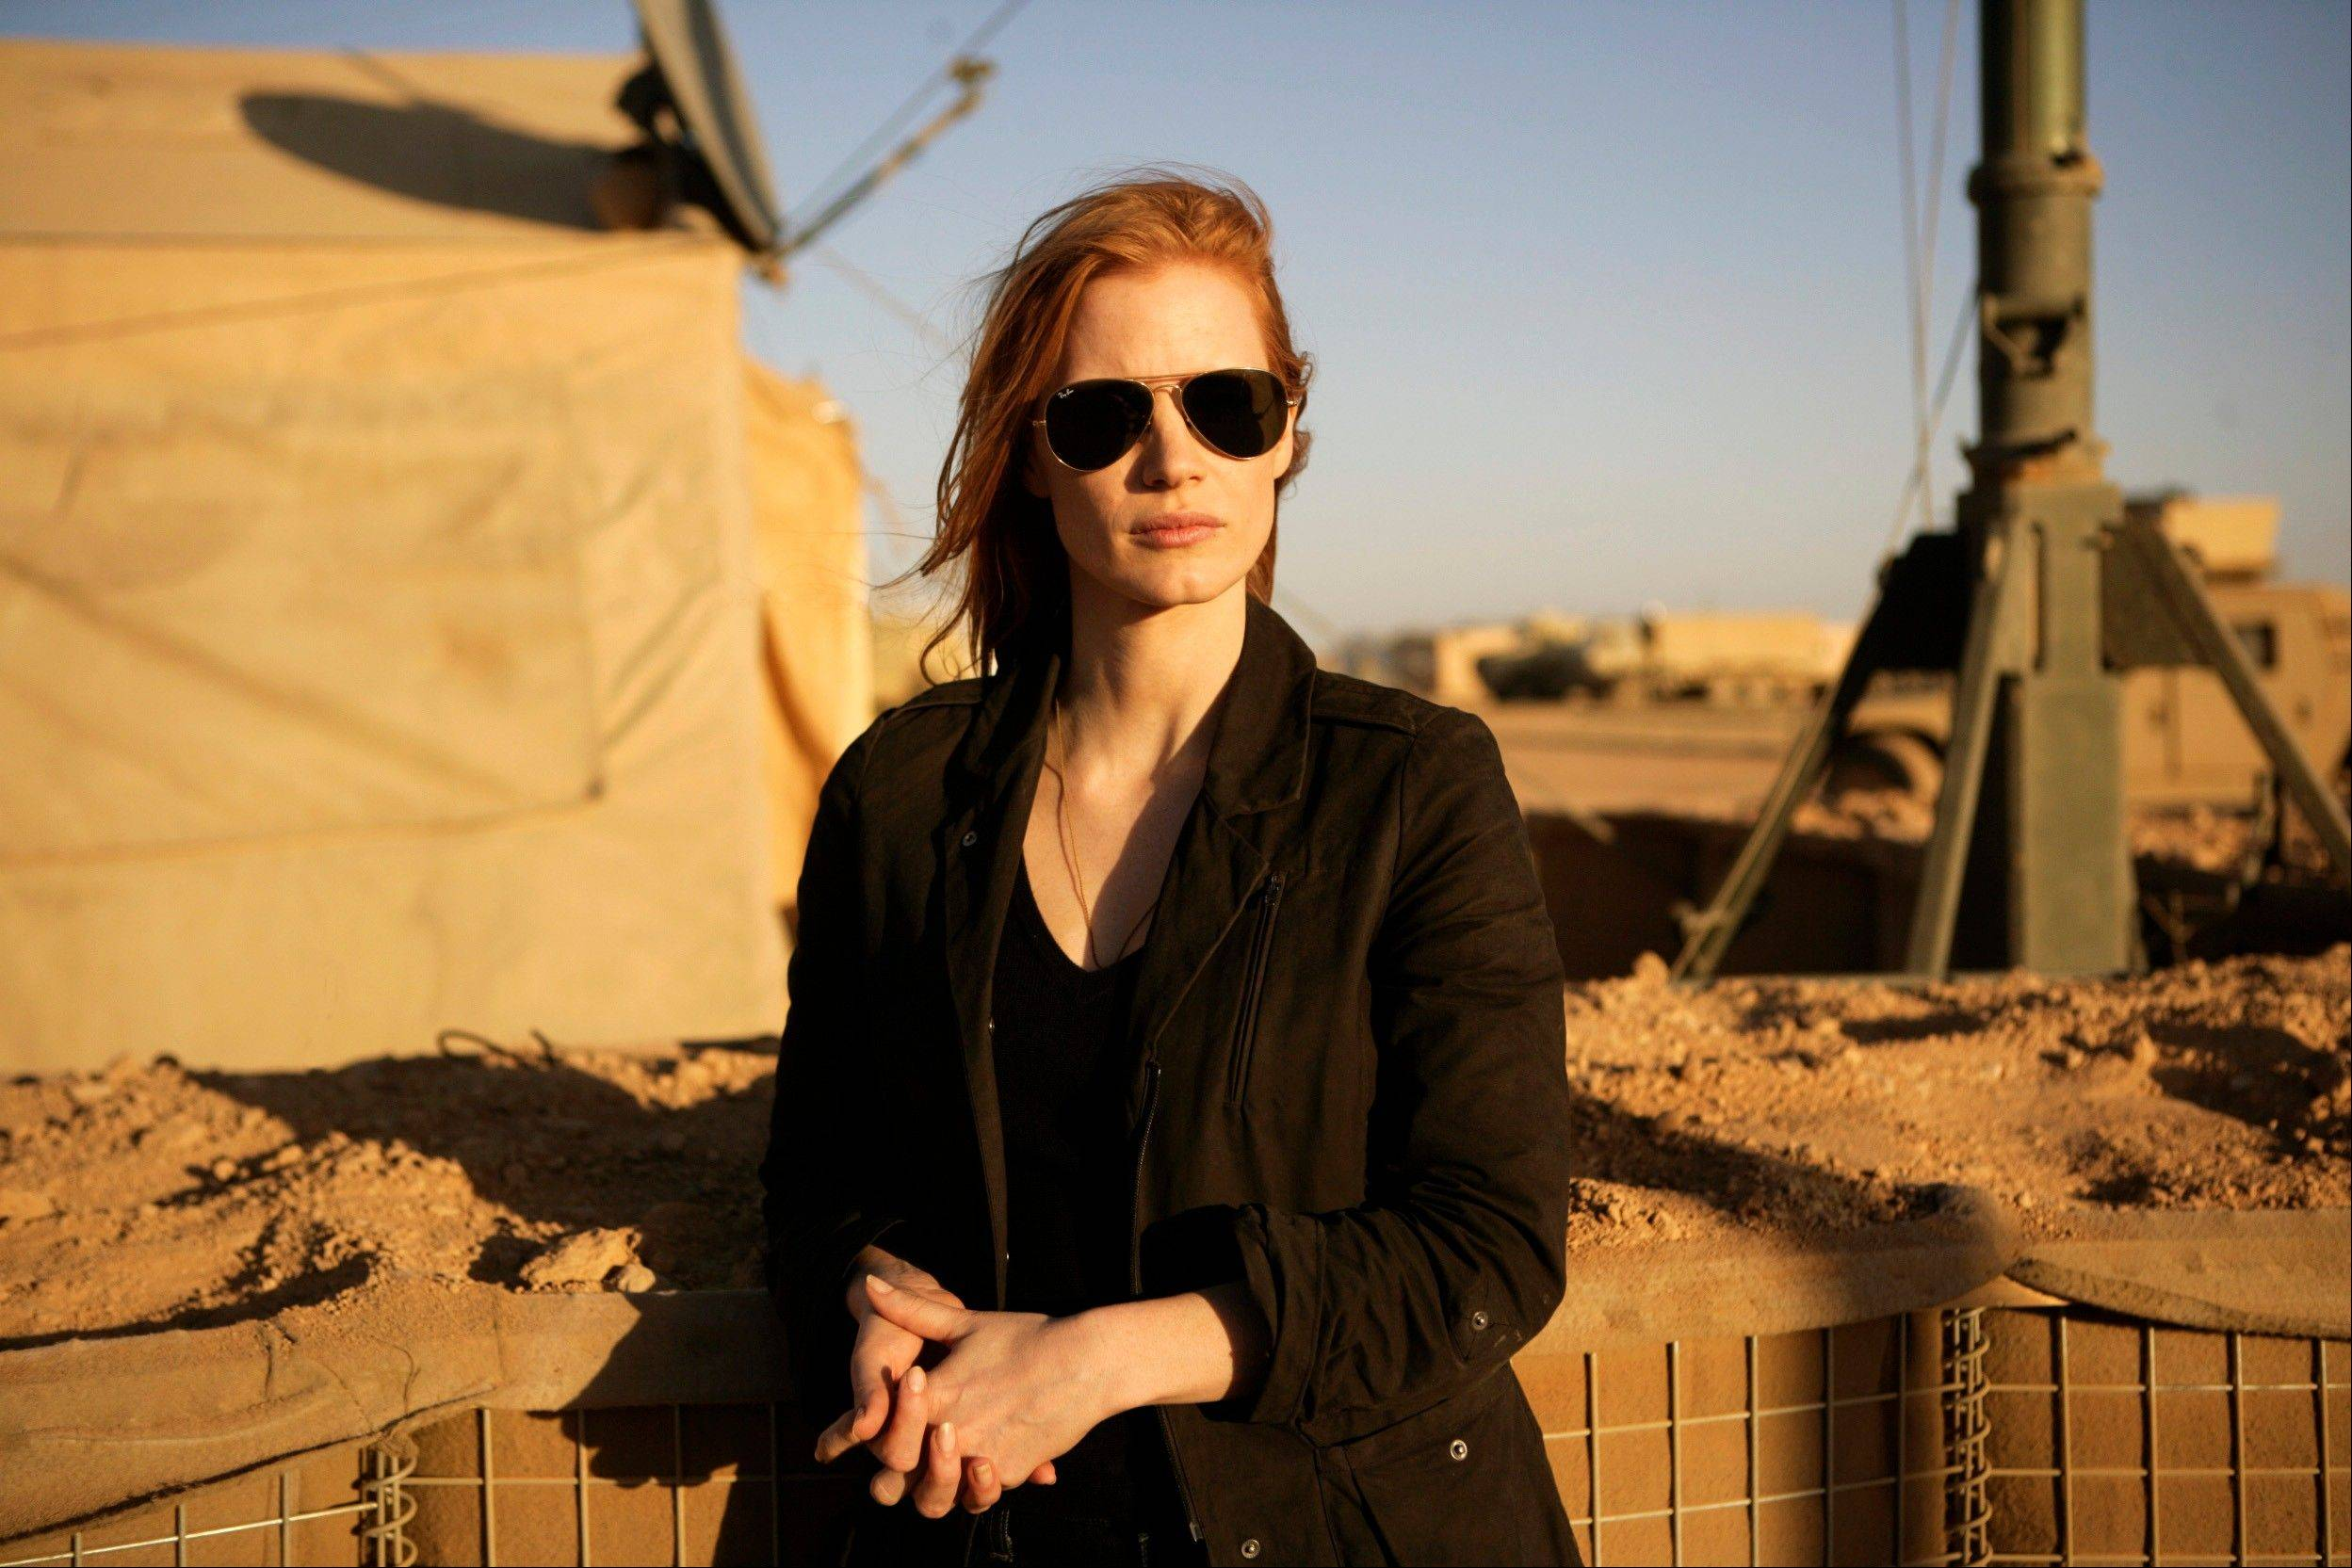 Chicago�s film critics gave Jessica Chastain Best Actress of 2012 for her role as a CIA agent in Kathryn Bigelow�s �Zero Dark Thirty,� also named best film of the year.